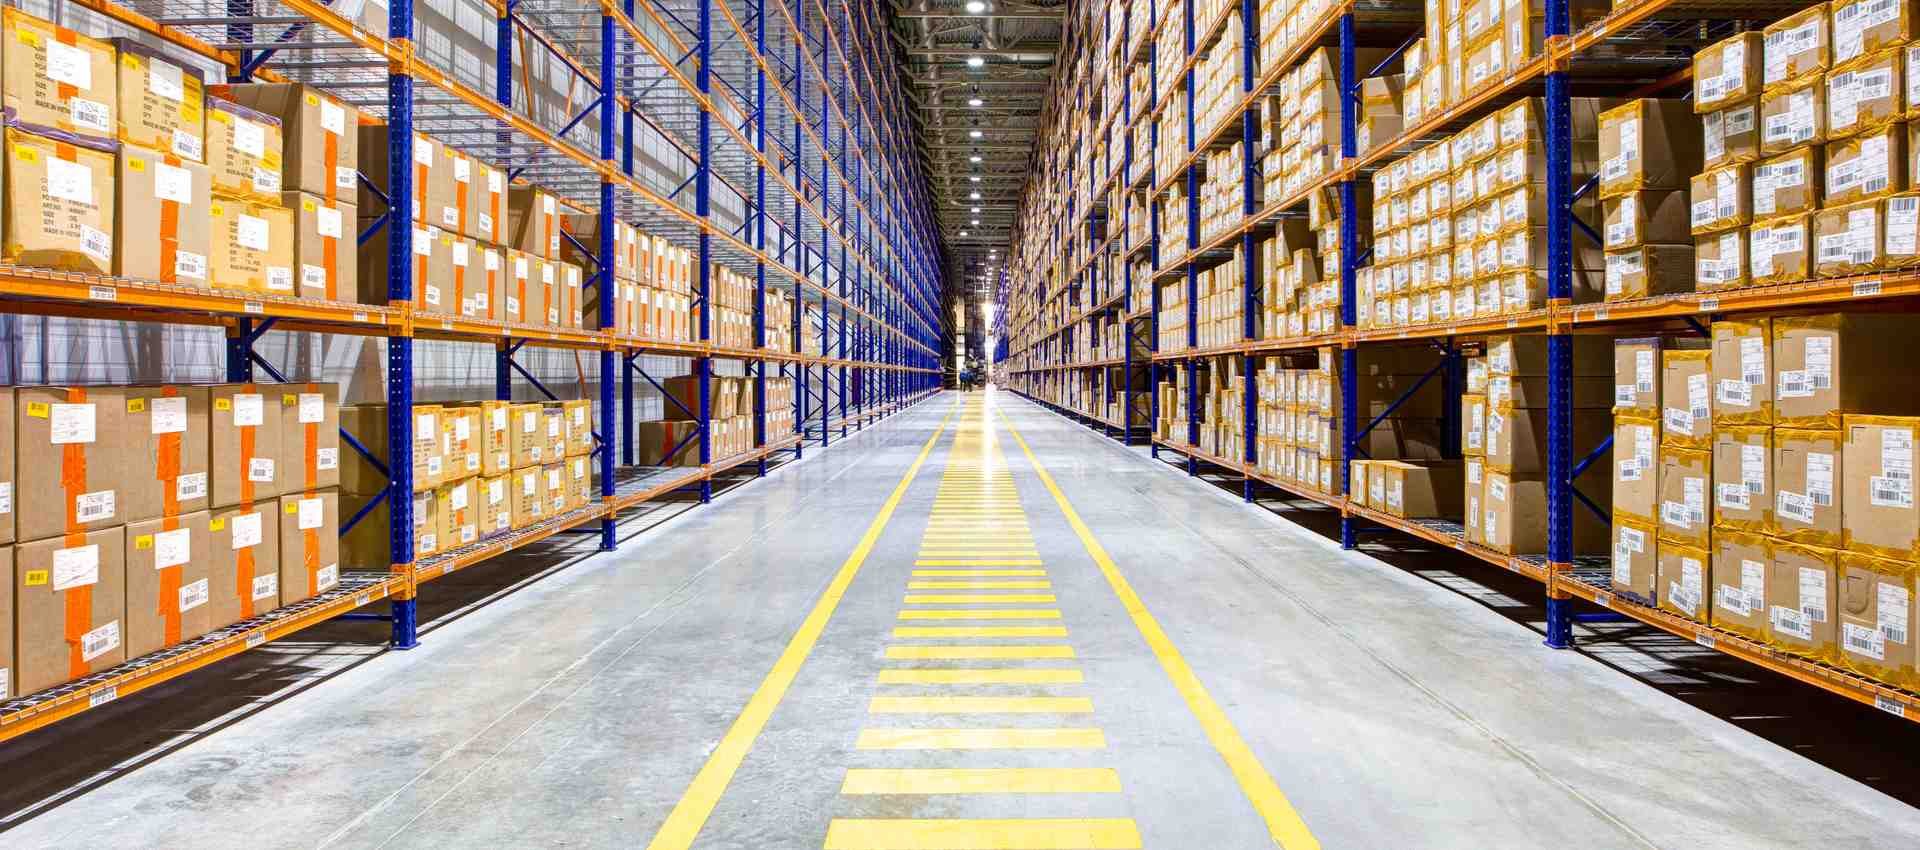 Warehouse Inventory Management Techniques to Increase Productivity